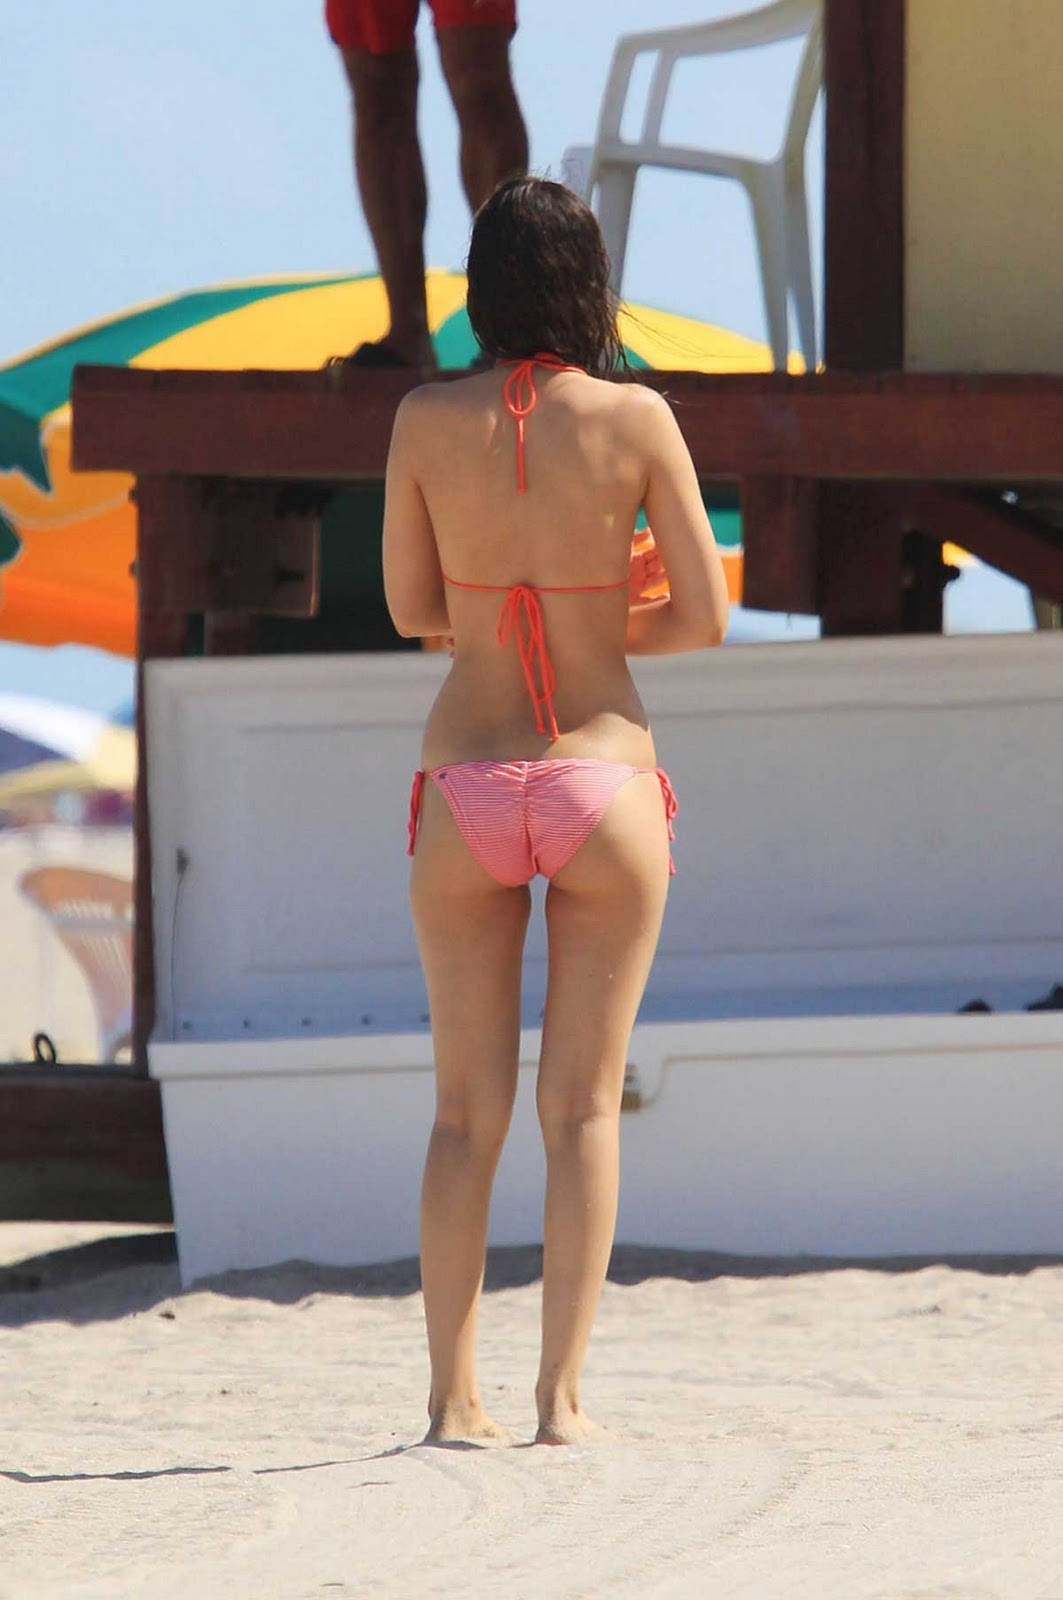 Candid amazing bubble butt ass cheeks tan thighs tiny shorts